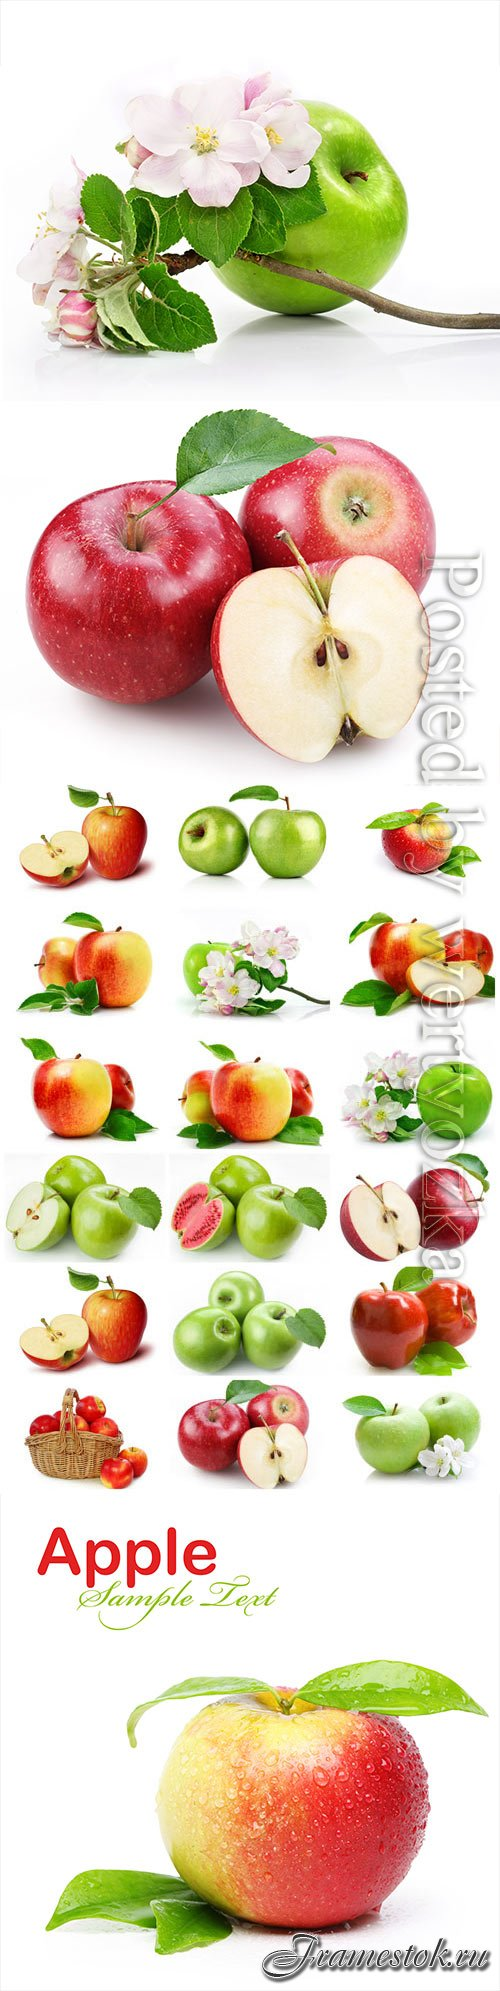 Red and green apples and apple blossom stock photo